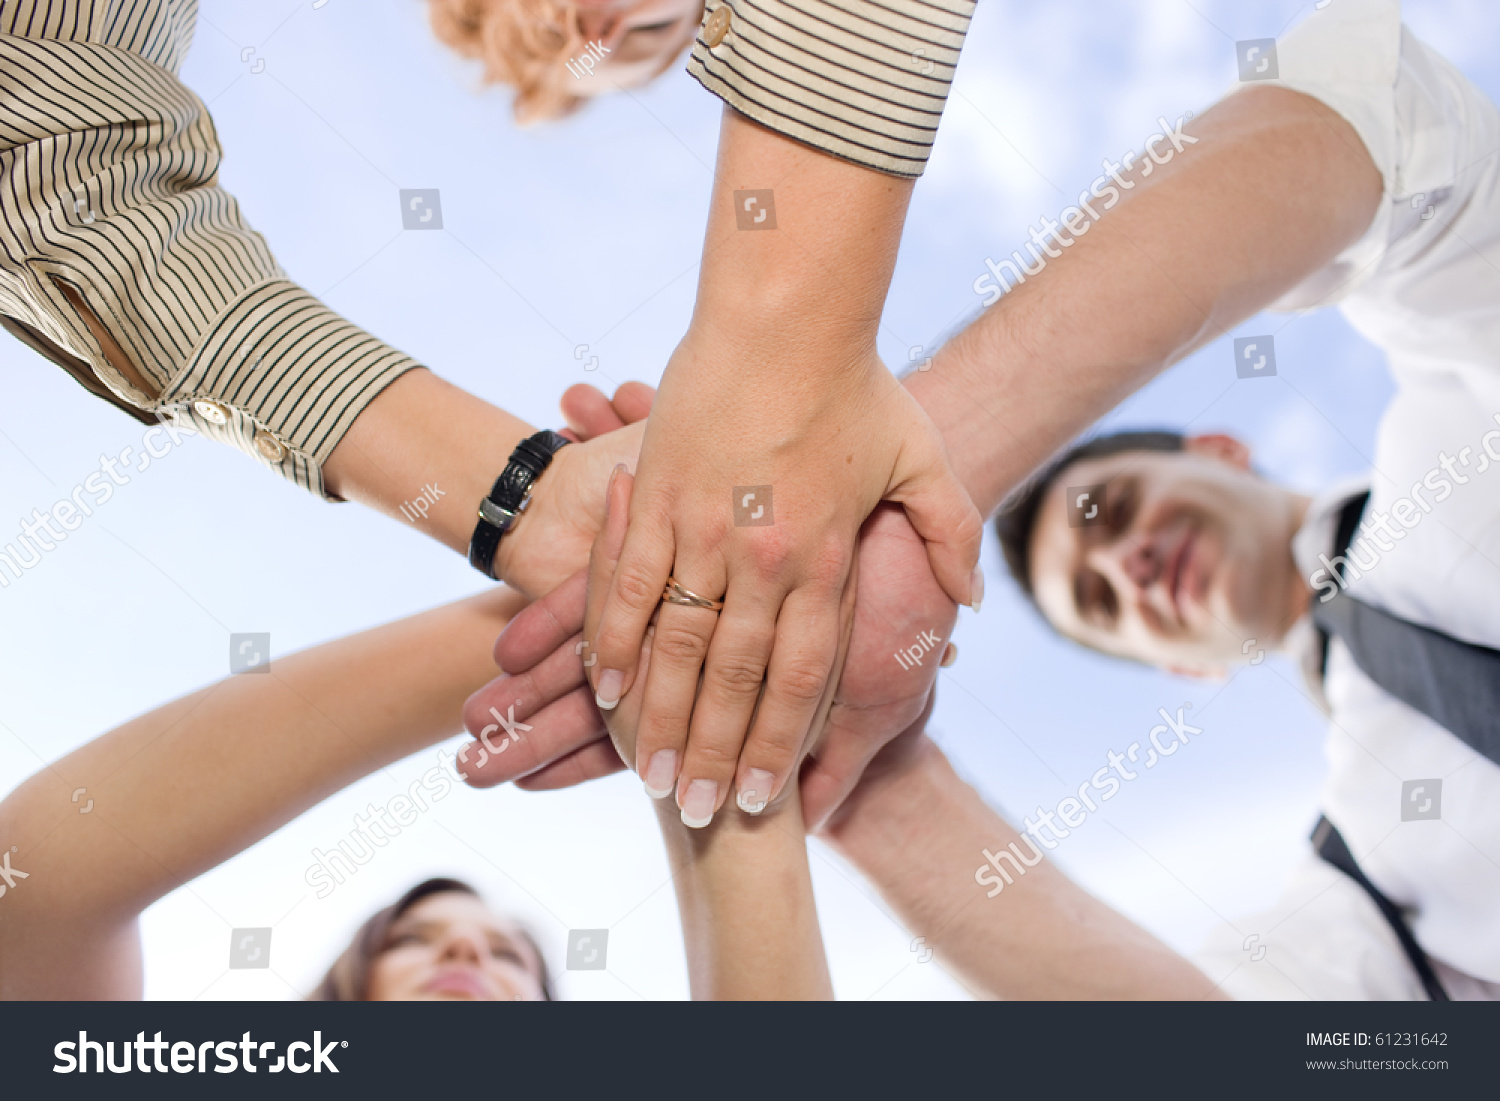 Technology Management Image: Business People Holding Hands All Together Stock Photo